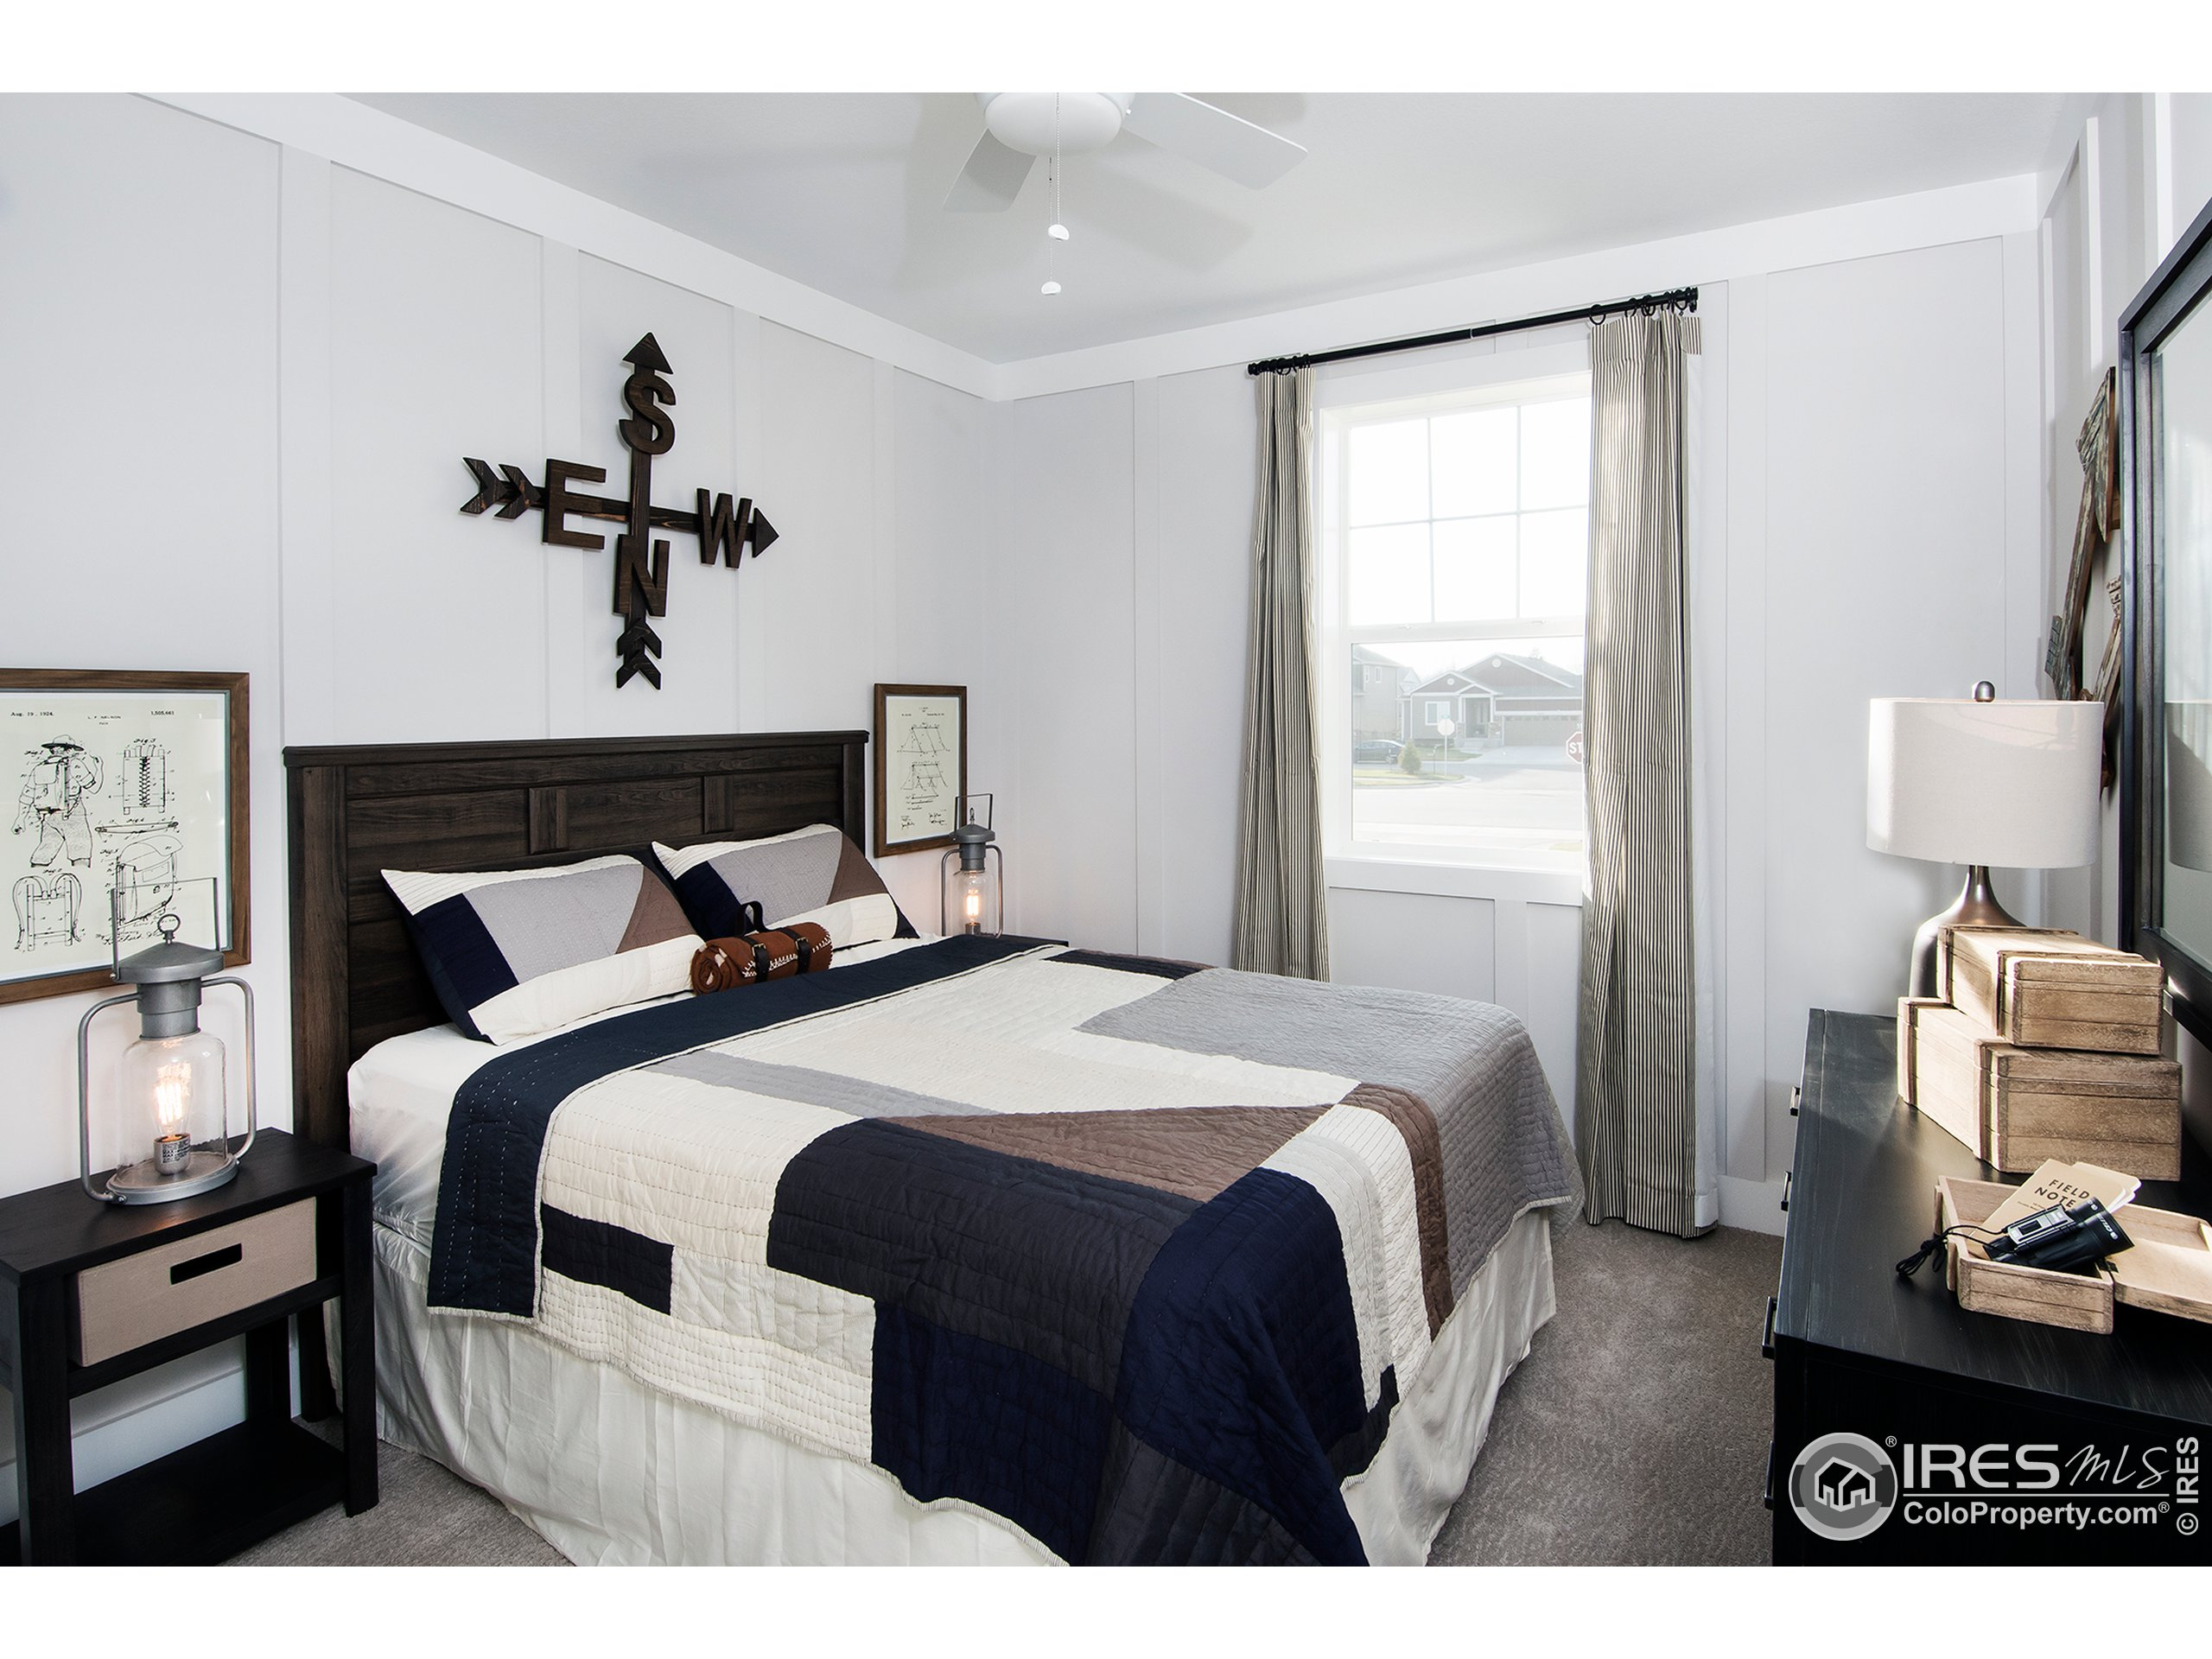 PHOTOS OF MODEL HOME. NOT OF ACTUAL HOUSE.